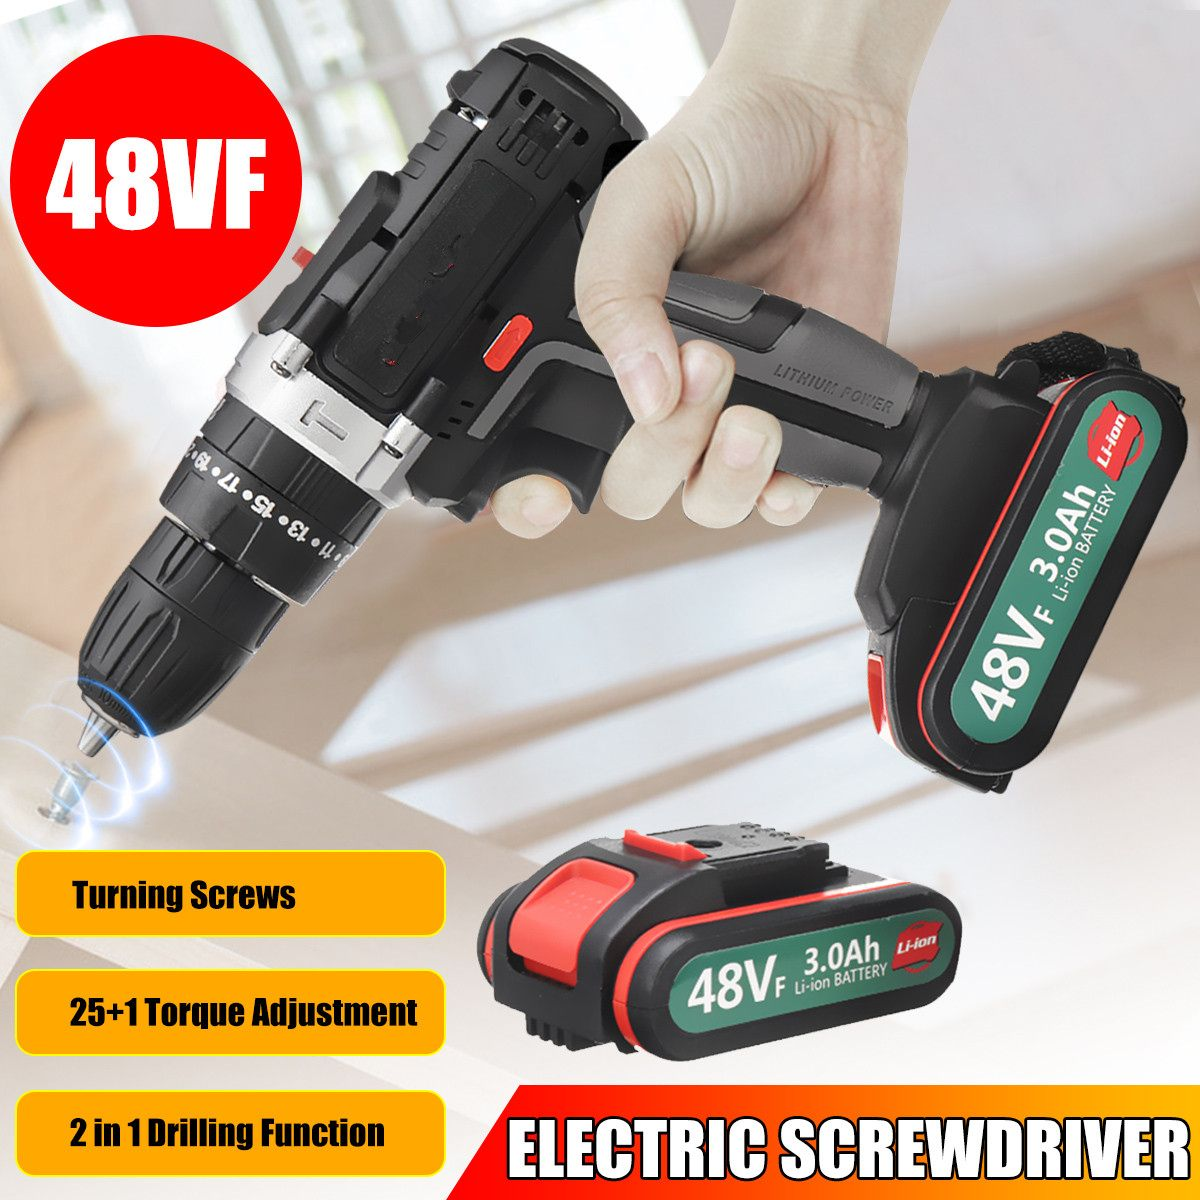 48VF 3000mAh Cordless Screwdriver Electric Screwdriver Cordless Drill Professional Power Tools Hand Drill With Charging Battery